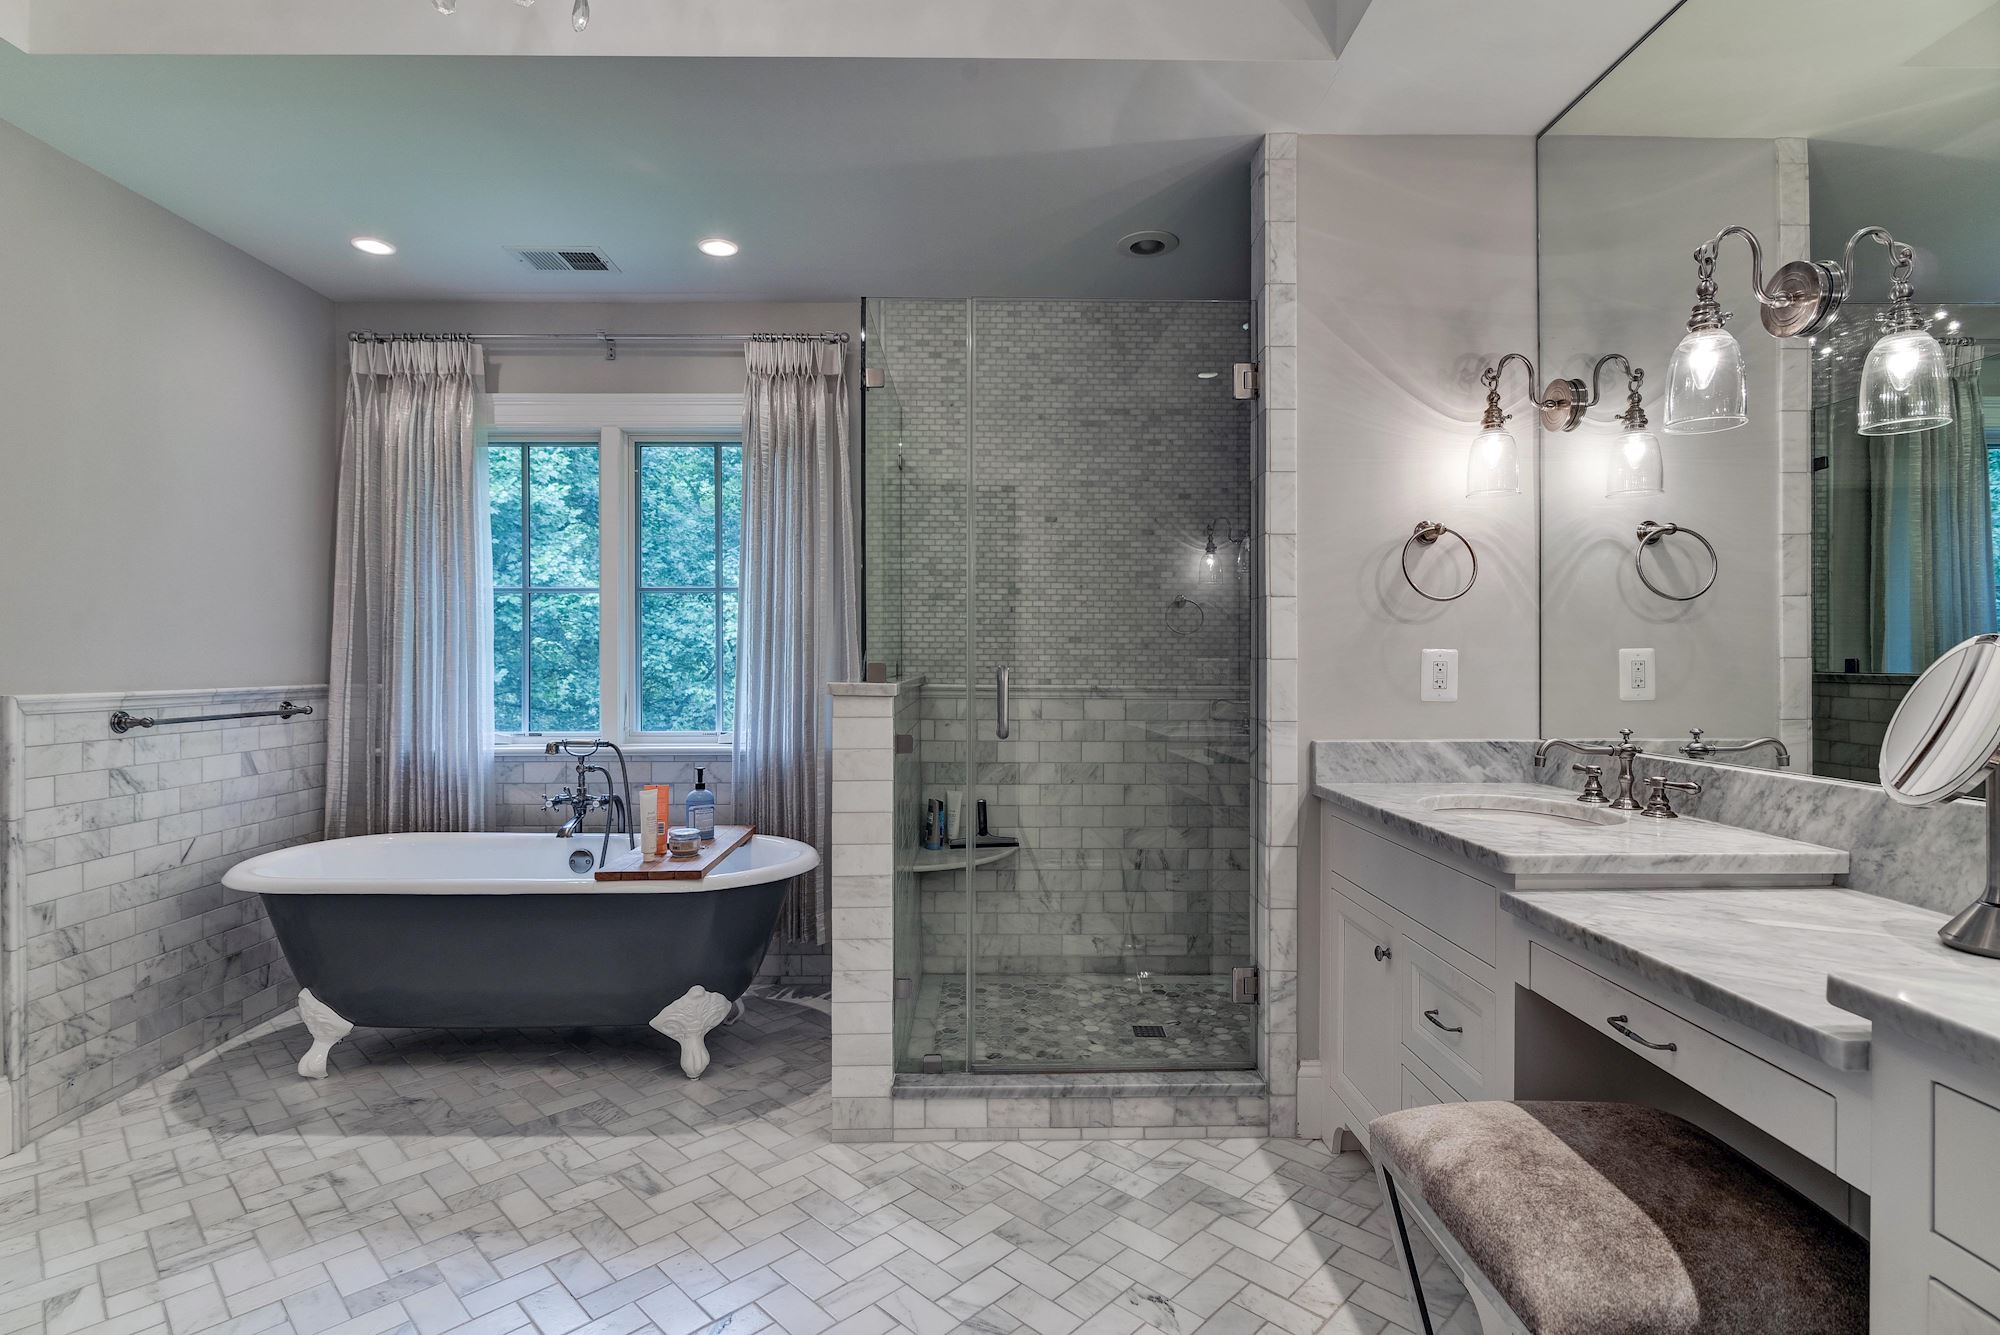 GREATJONES-35TH-MASTER-BATH-1.jpg